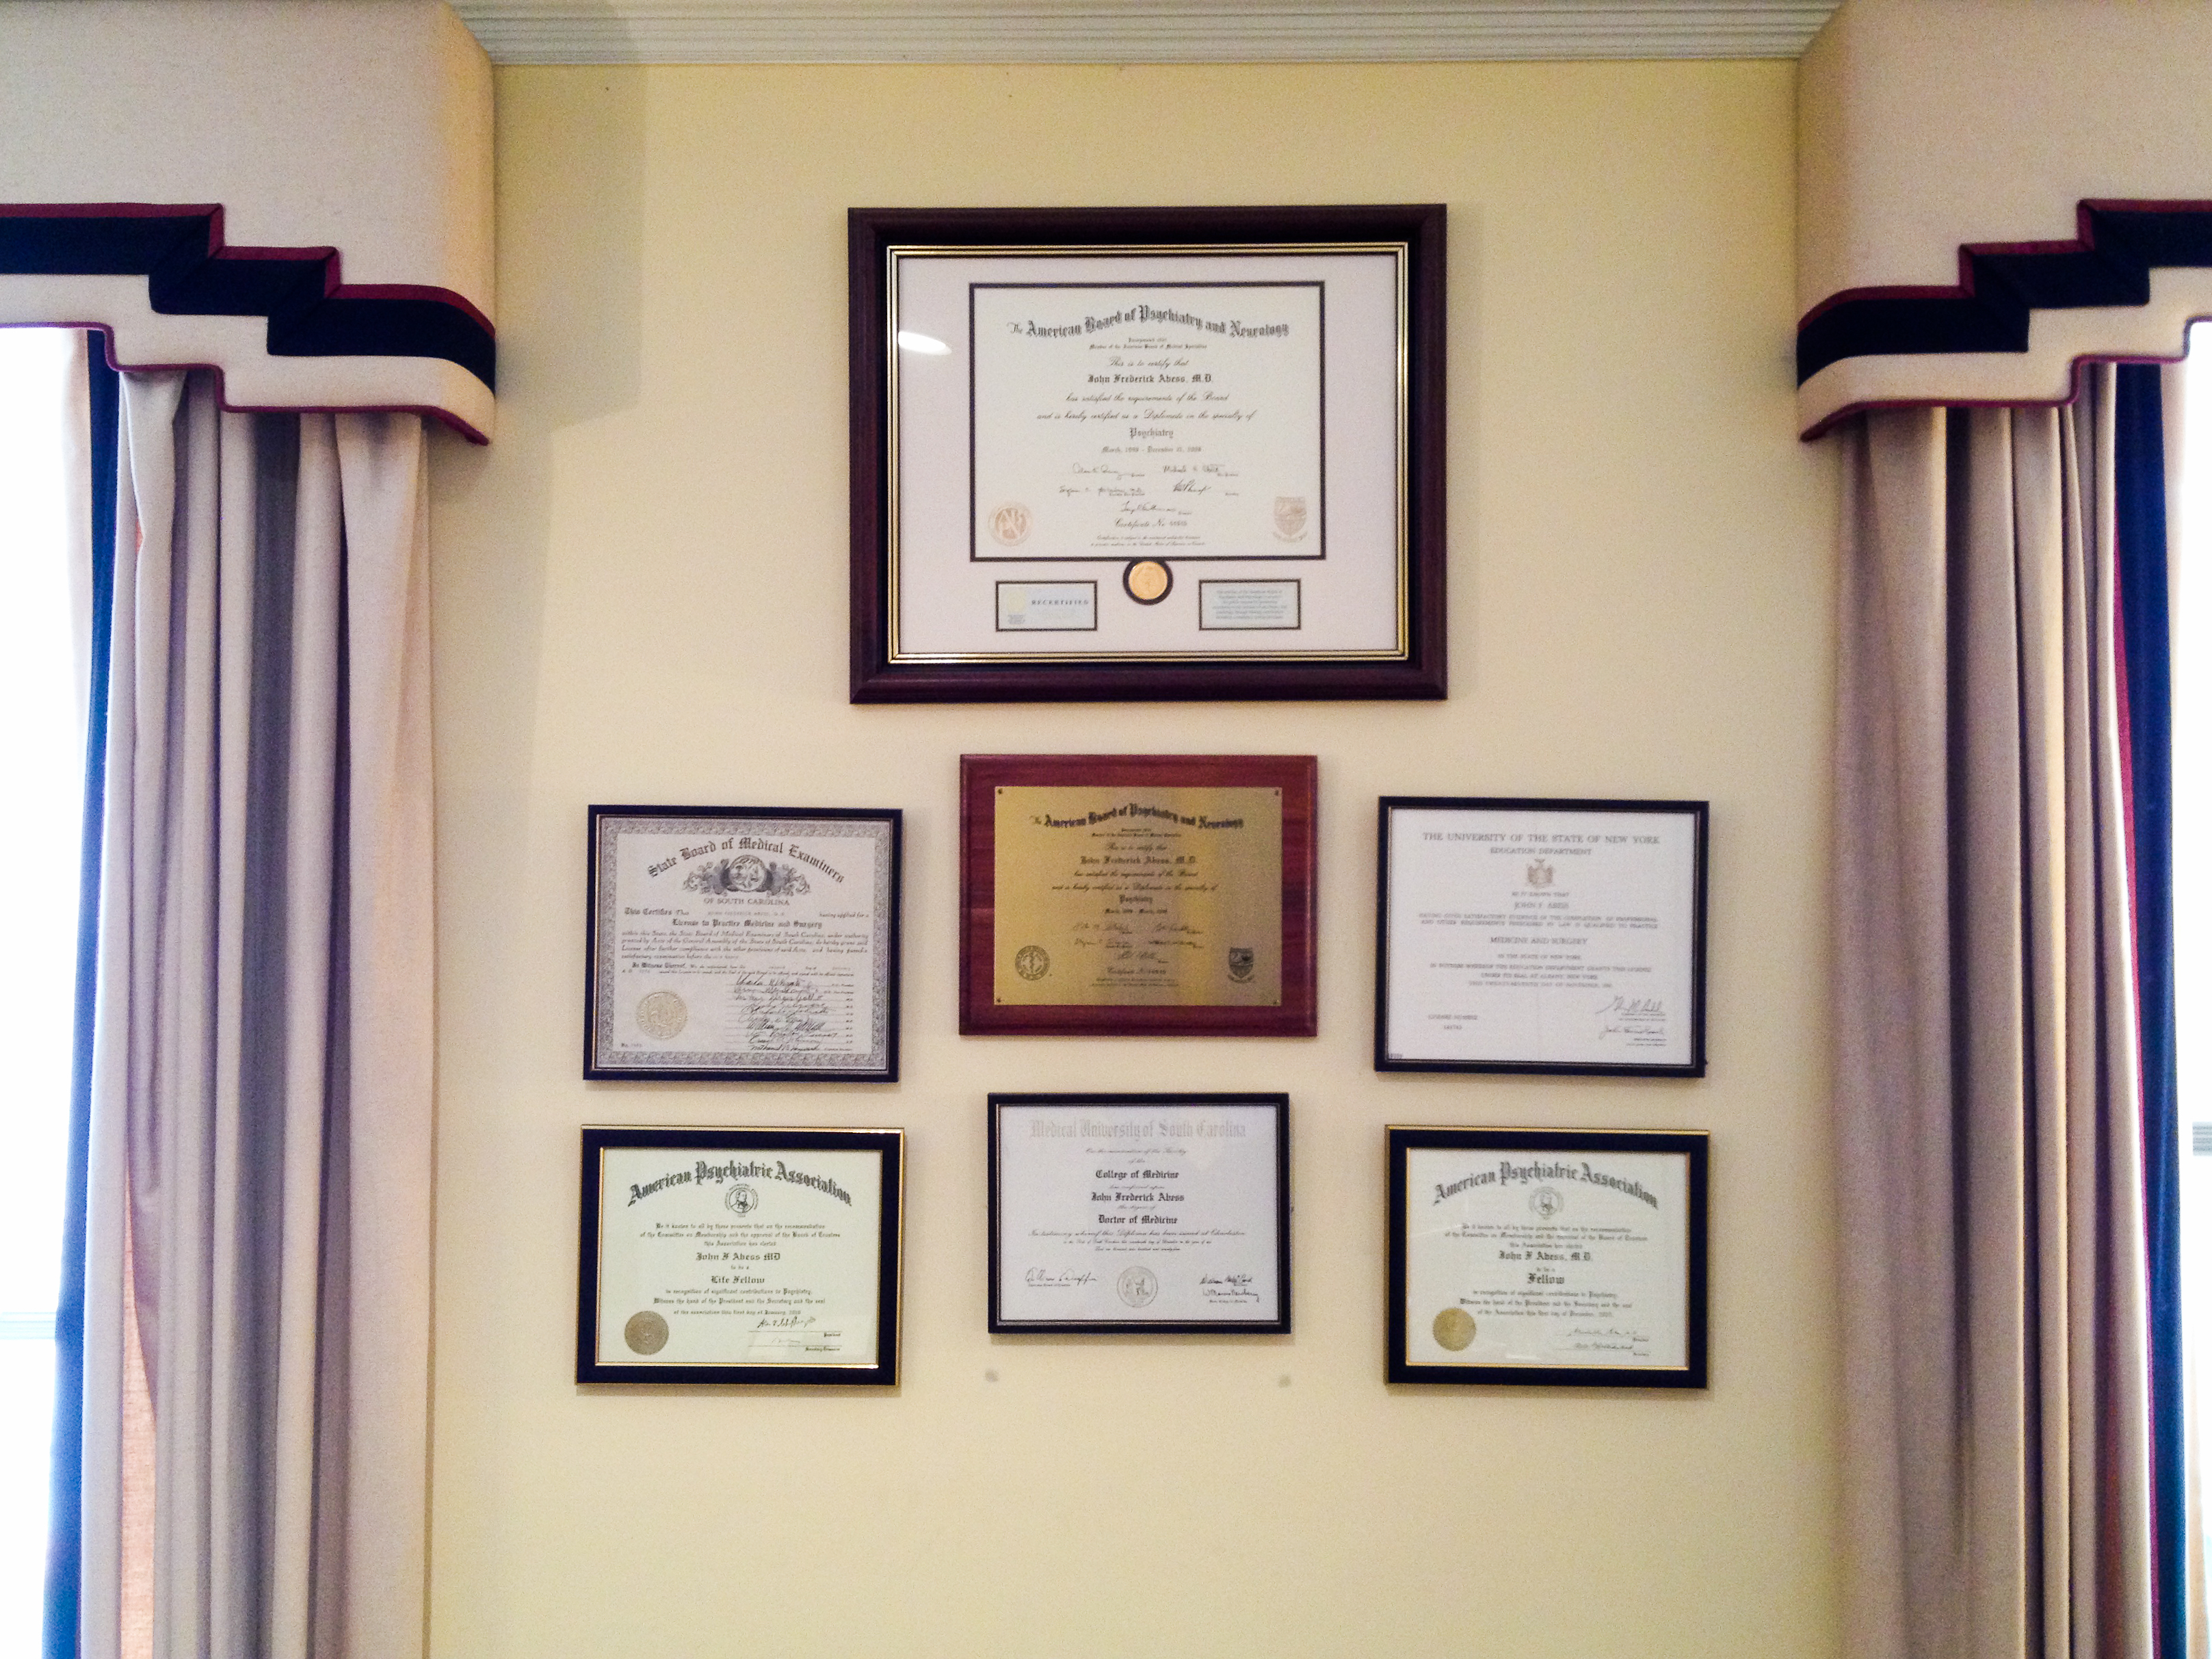 Charleston Psychiatrist Dr Abess amp his Wife team up to  : DIPLOMA WALL Desk Chairs for <strong>Posture</strong> from www.3po.com size 3234 x 2425 jpeg 5452kB